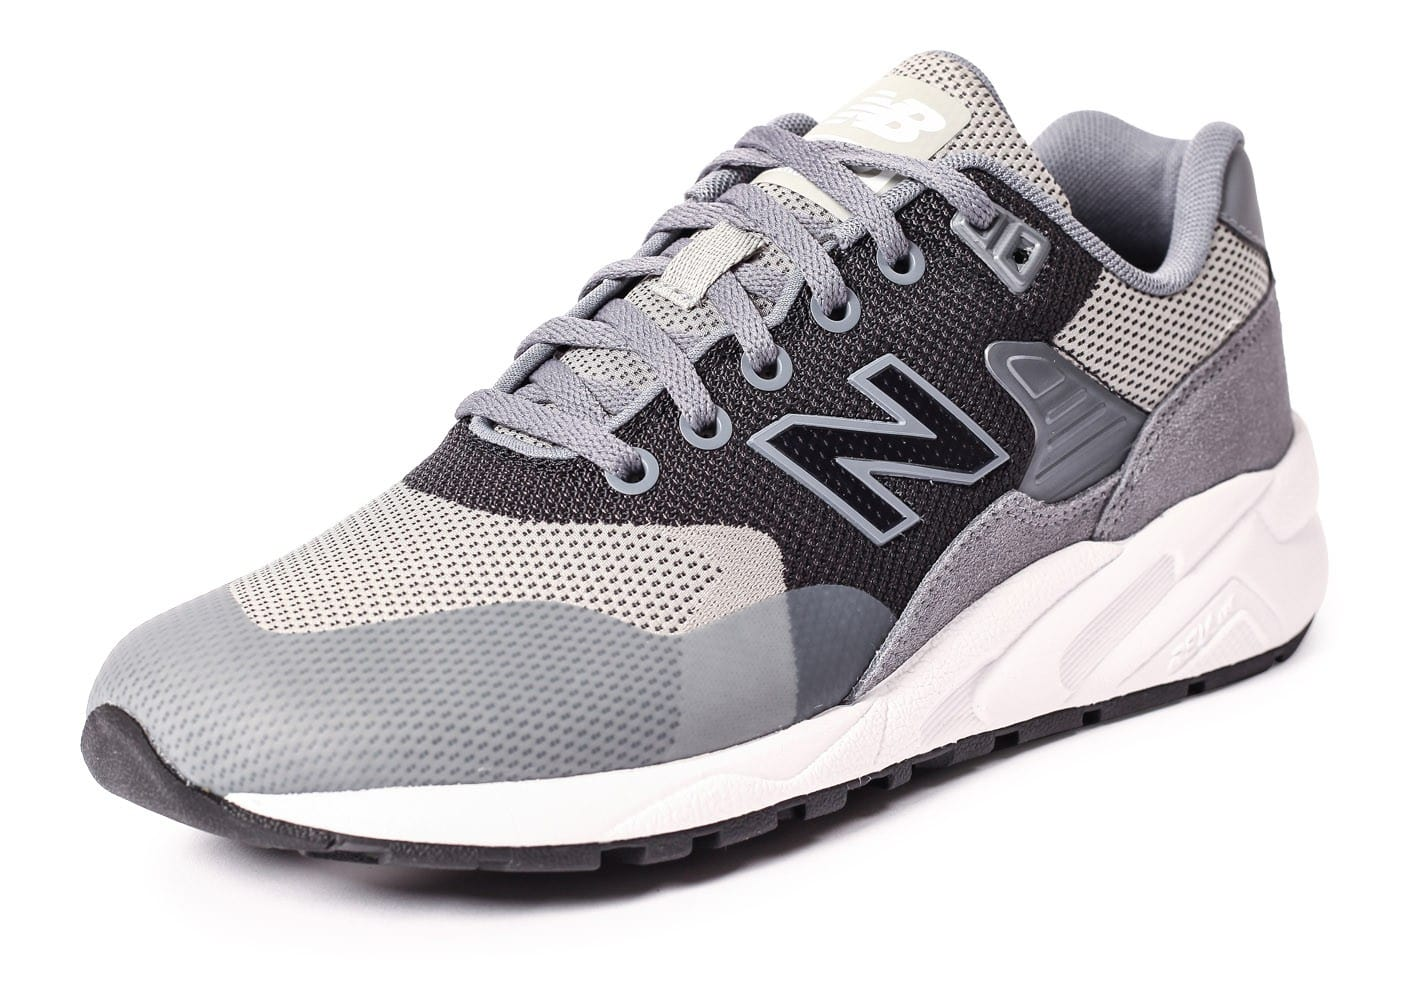 new balance 580 mrt580jk grise chaussures homme chausport. Black Bedroom Furniture Sets. Home Design Ideas